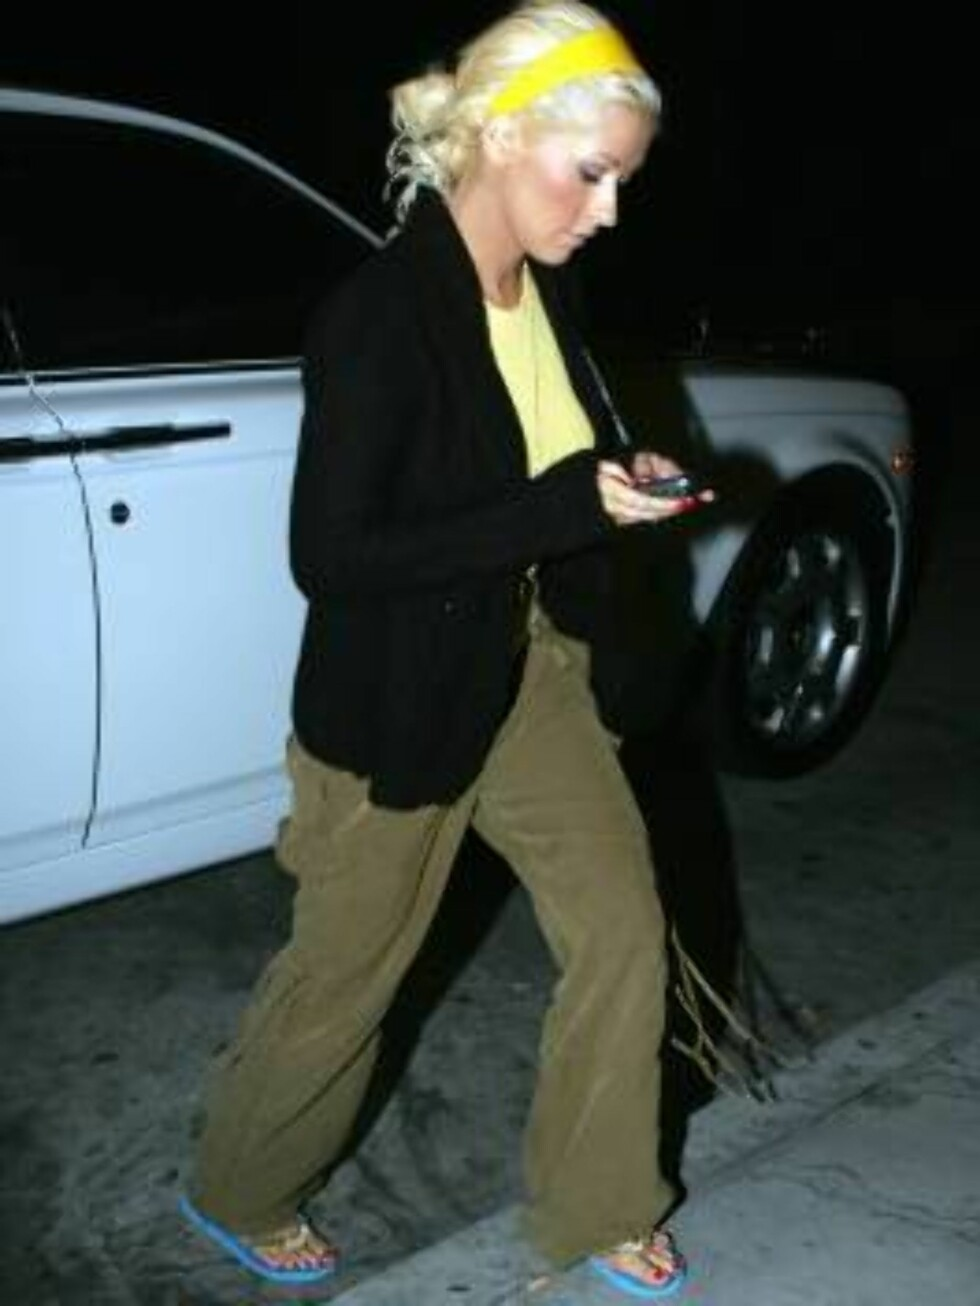 Christina  Aguilera jumping the wall as she leaves a recording studio in Hollywood. October 11, 2005 X17agency EXCLUSIVE / ALL OVER PRESS Foto: All Over Press